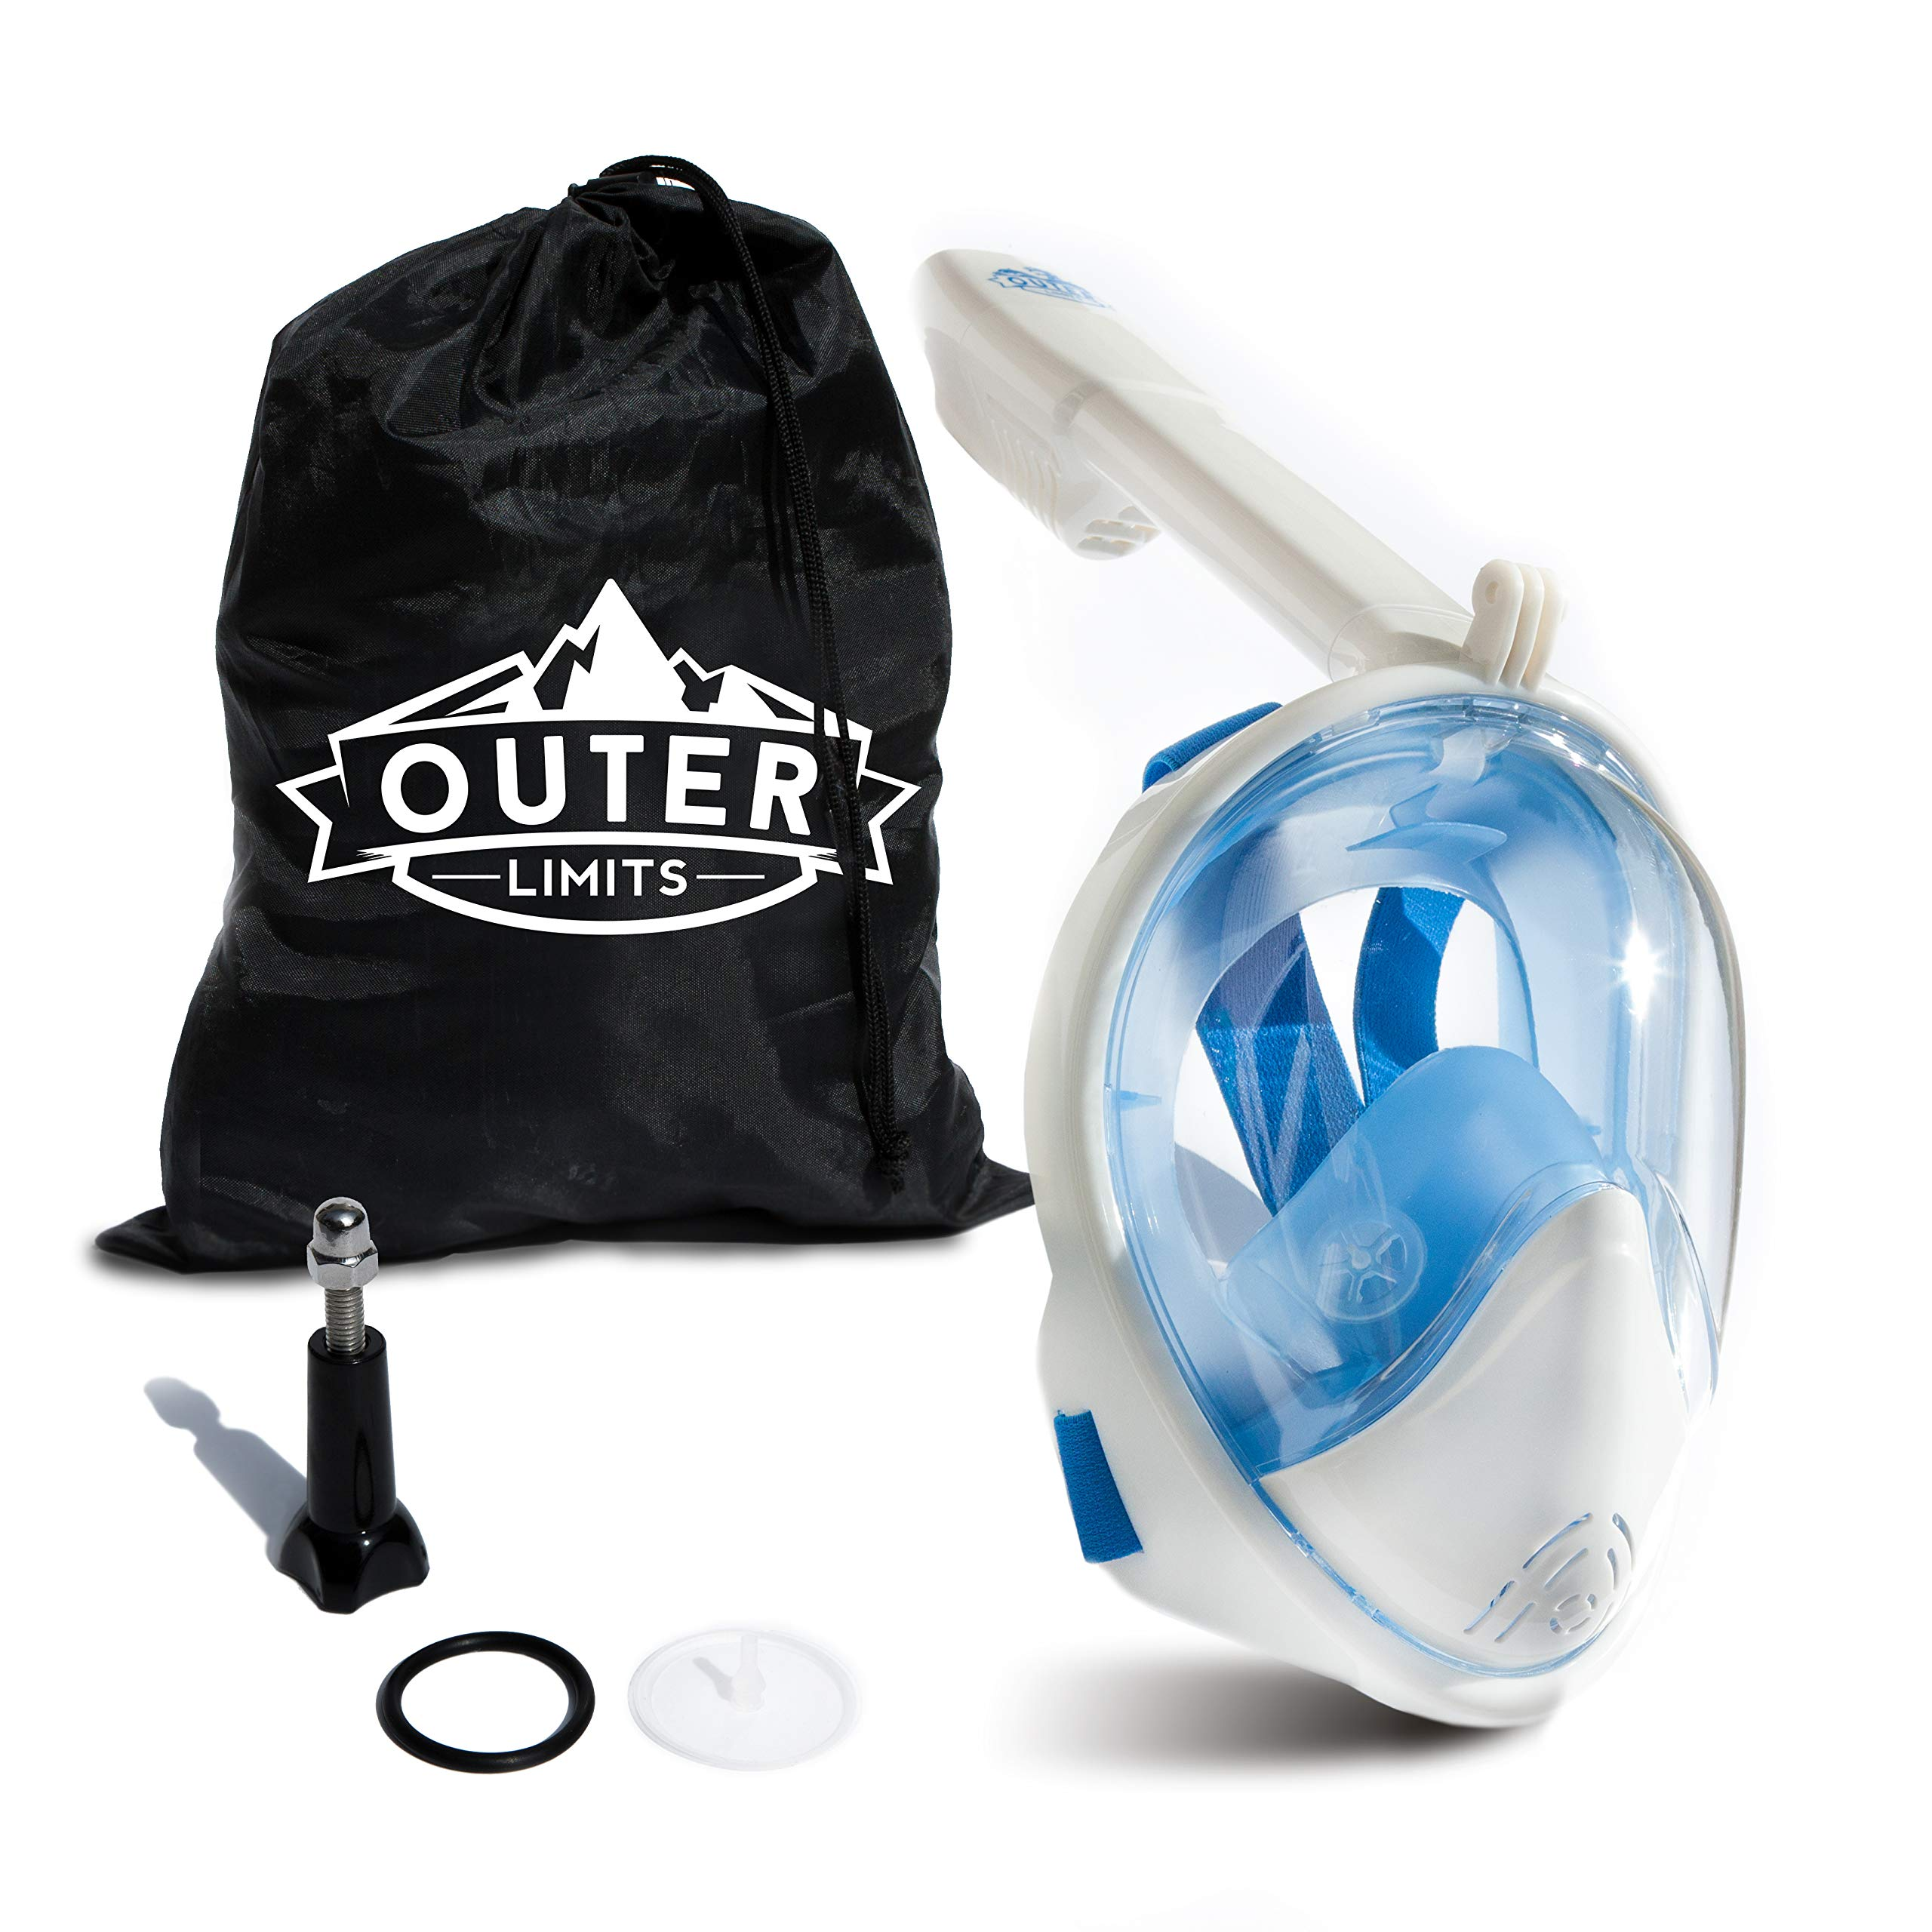 Outer Limits Full Face Snorkel Mask Adult - Scuba Mask - 180° Panoramic View - New 2019 Bubble Design with a Longer Snorkel - Snorkeling Gear -Mask and Snorkel Sets Adult- Snorkle Mask by Outer Limits